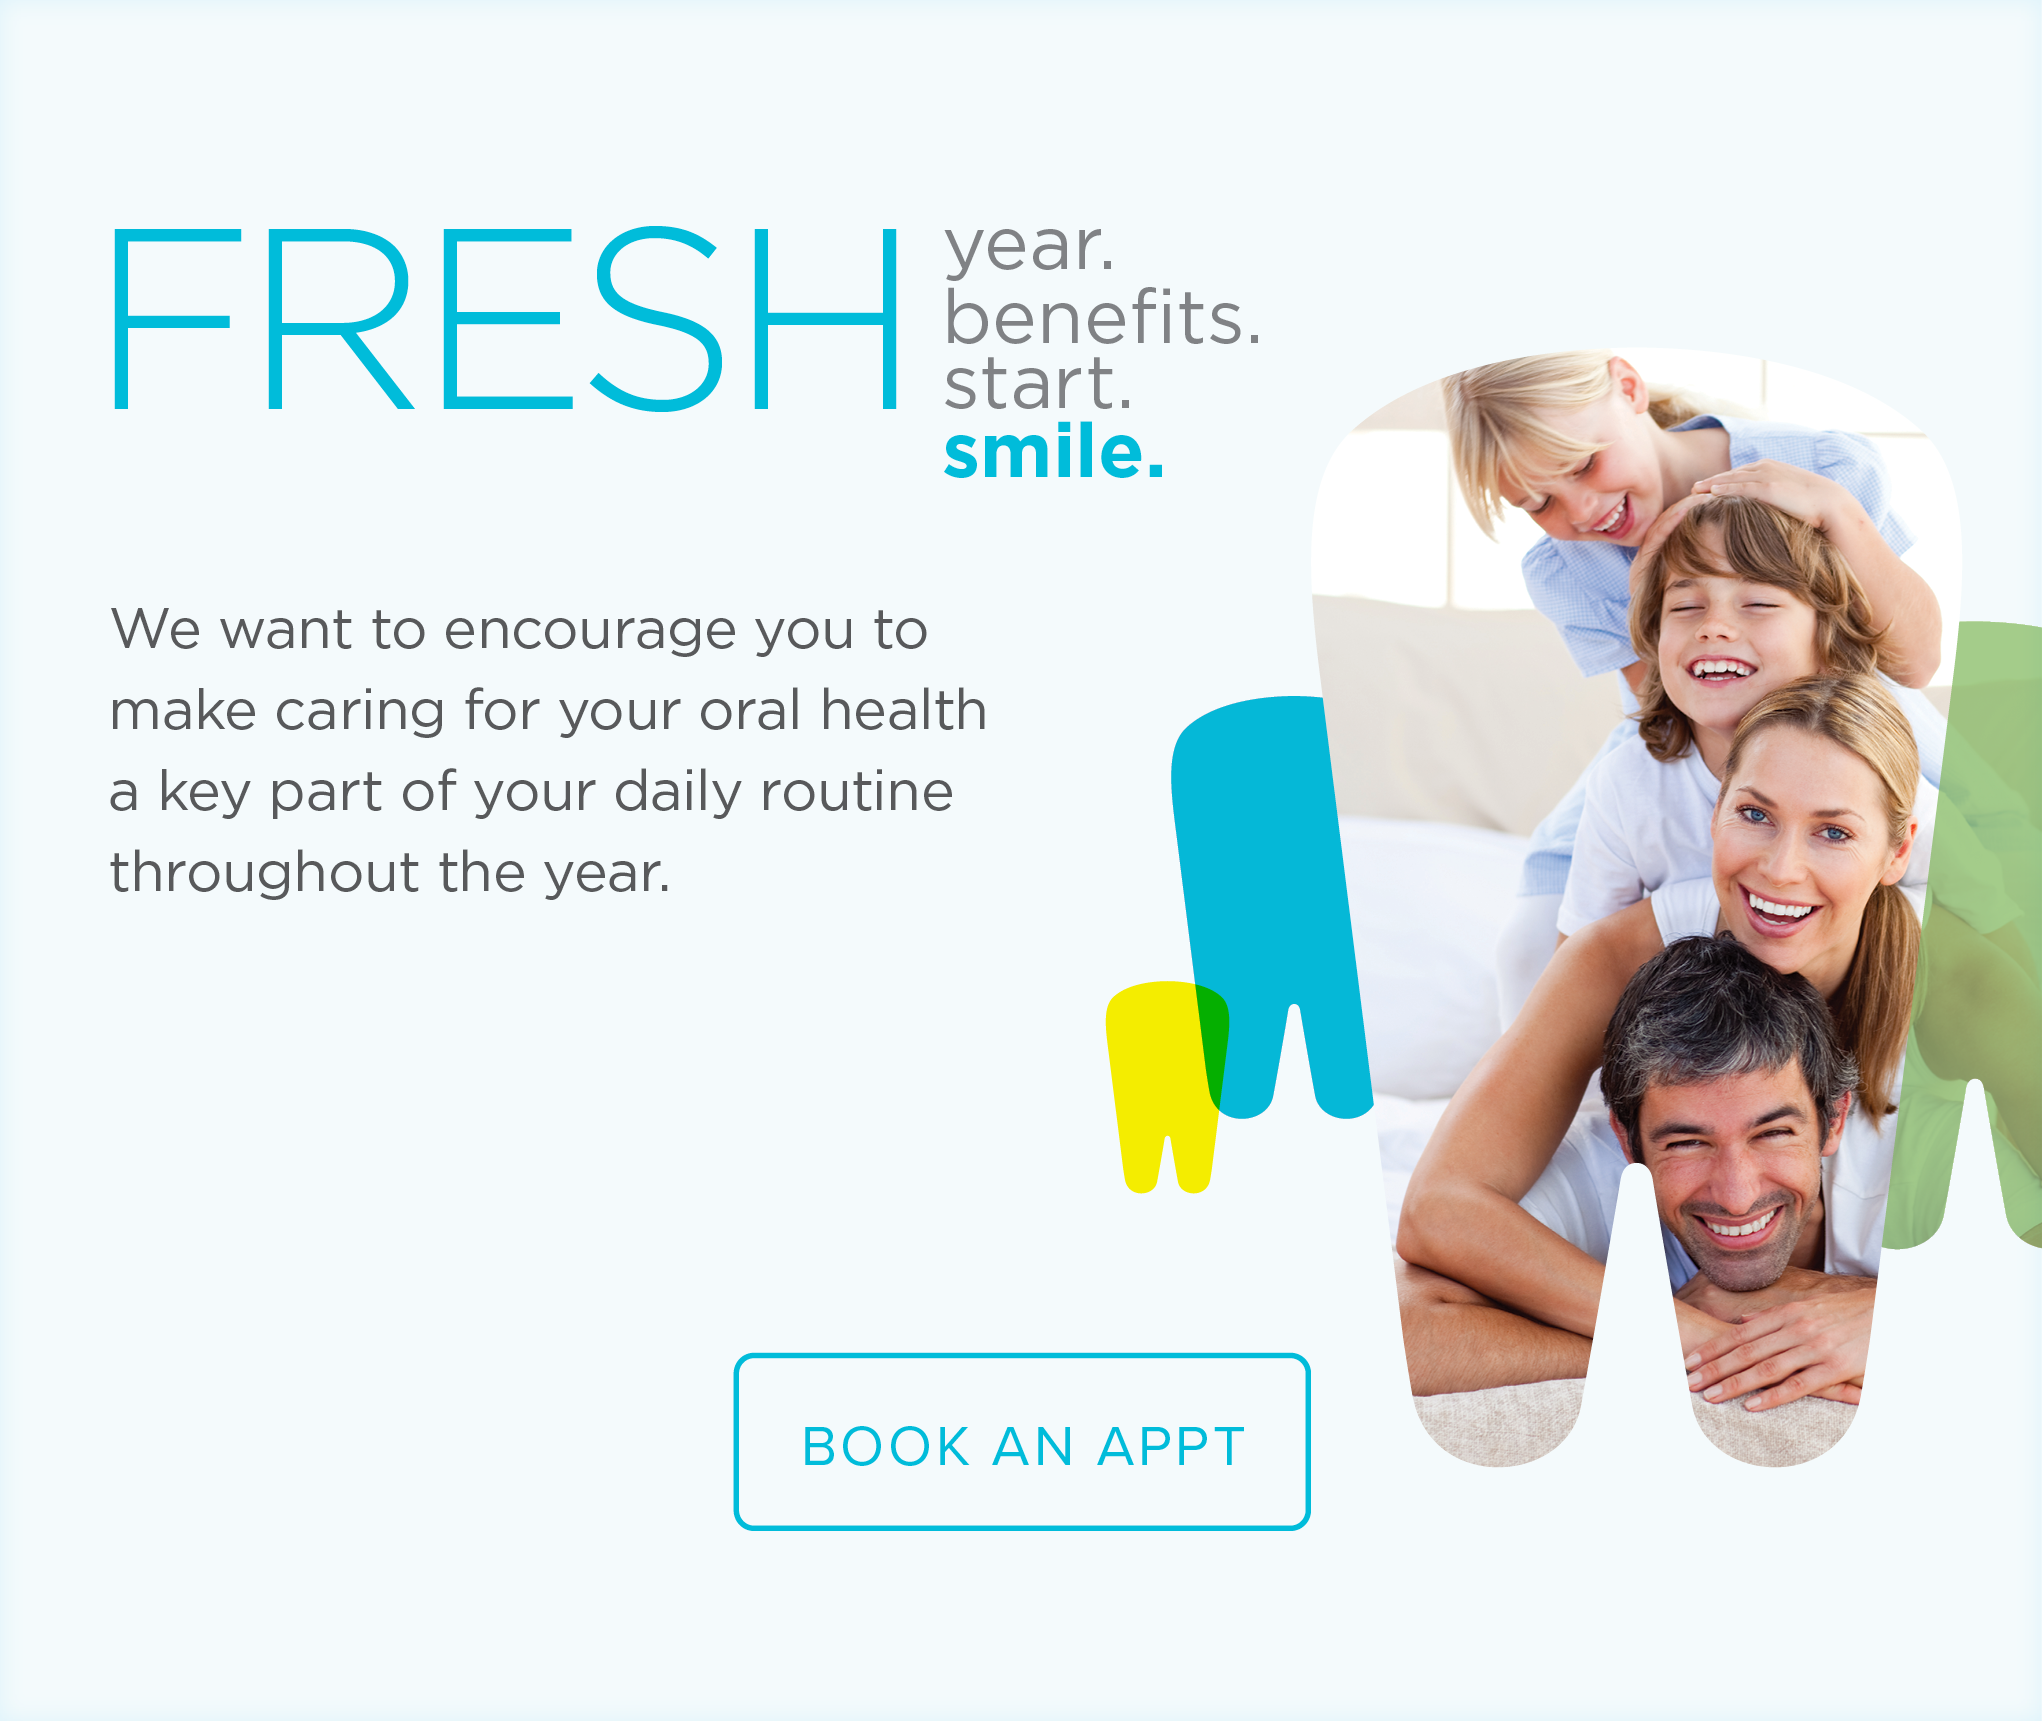 Parker Dentistry - Make the Most of Your Benefits